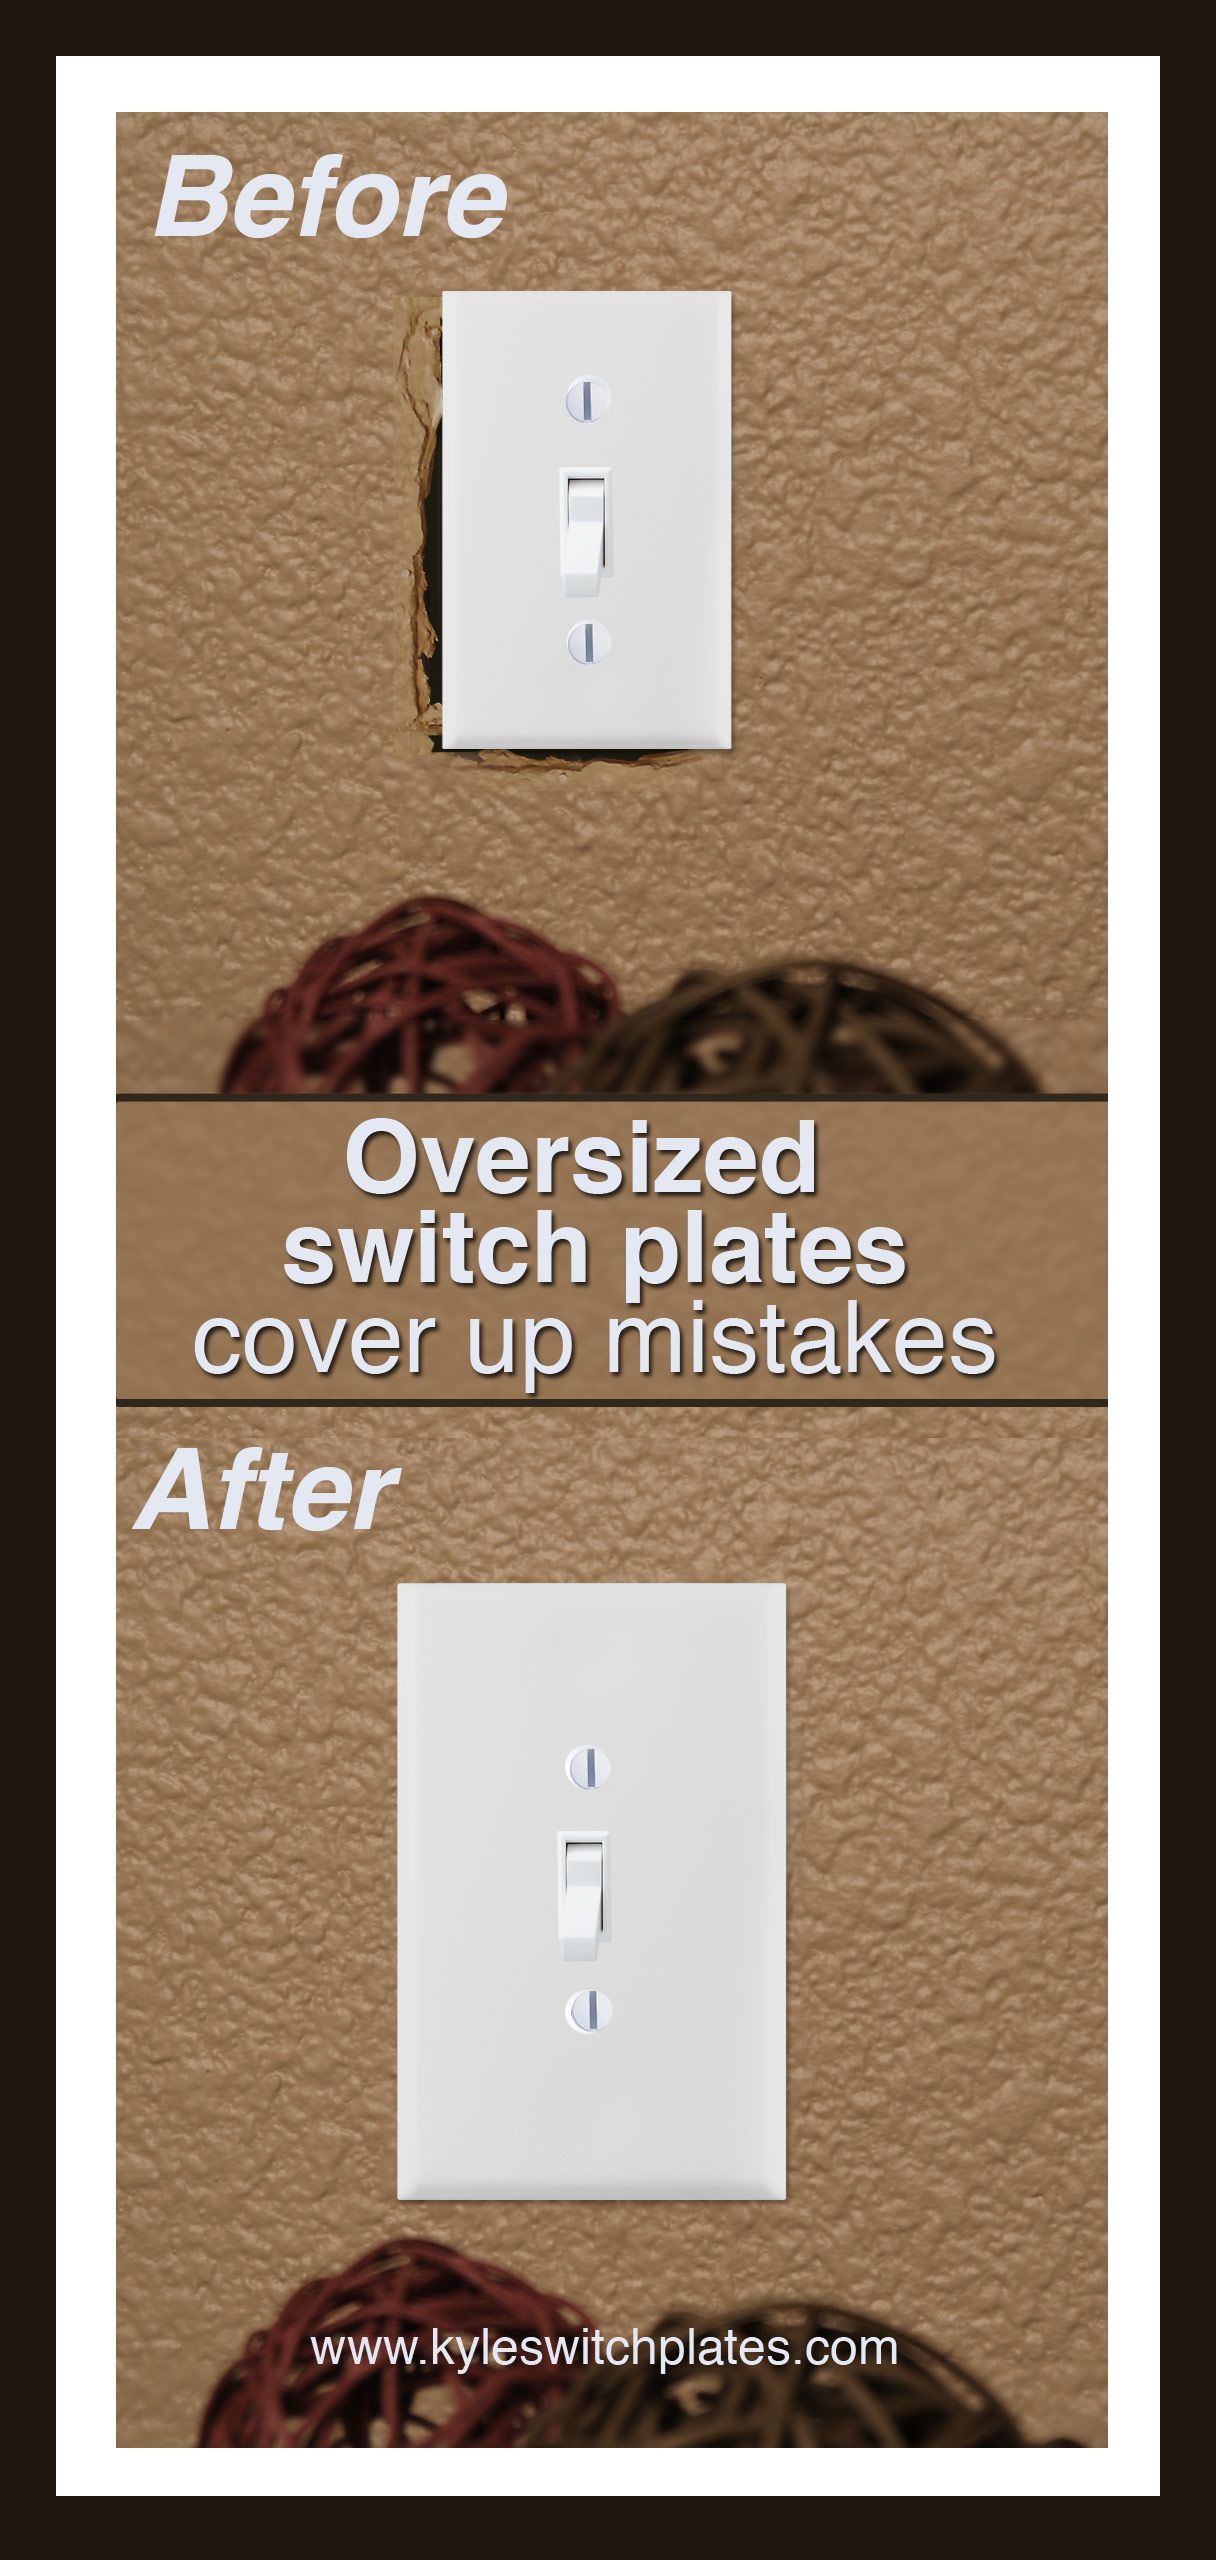 Outlet Switch Covers Oversized Light Switch Plates & Outlet Covers  Cover Up Hole In